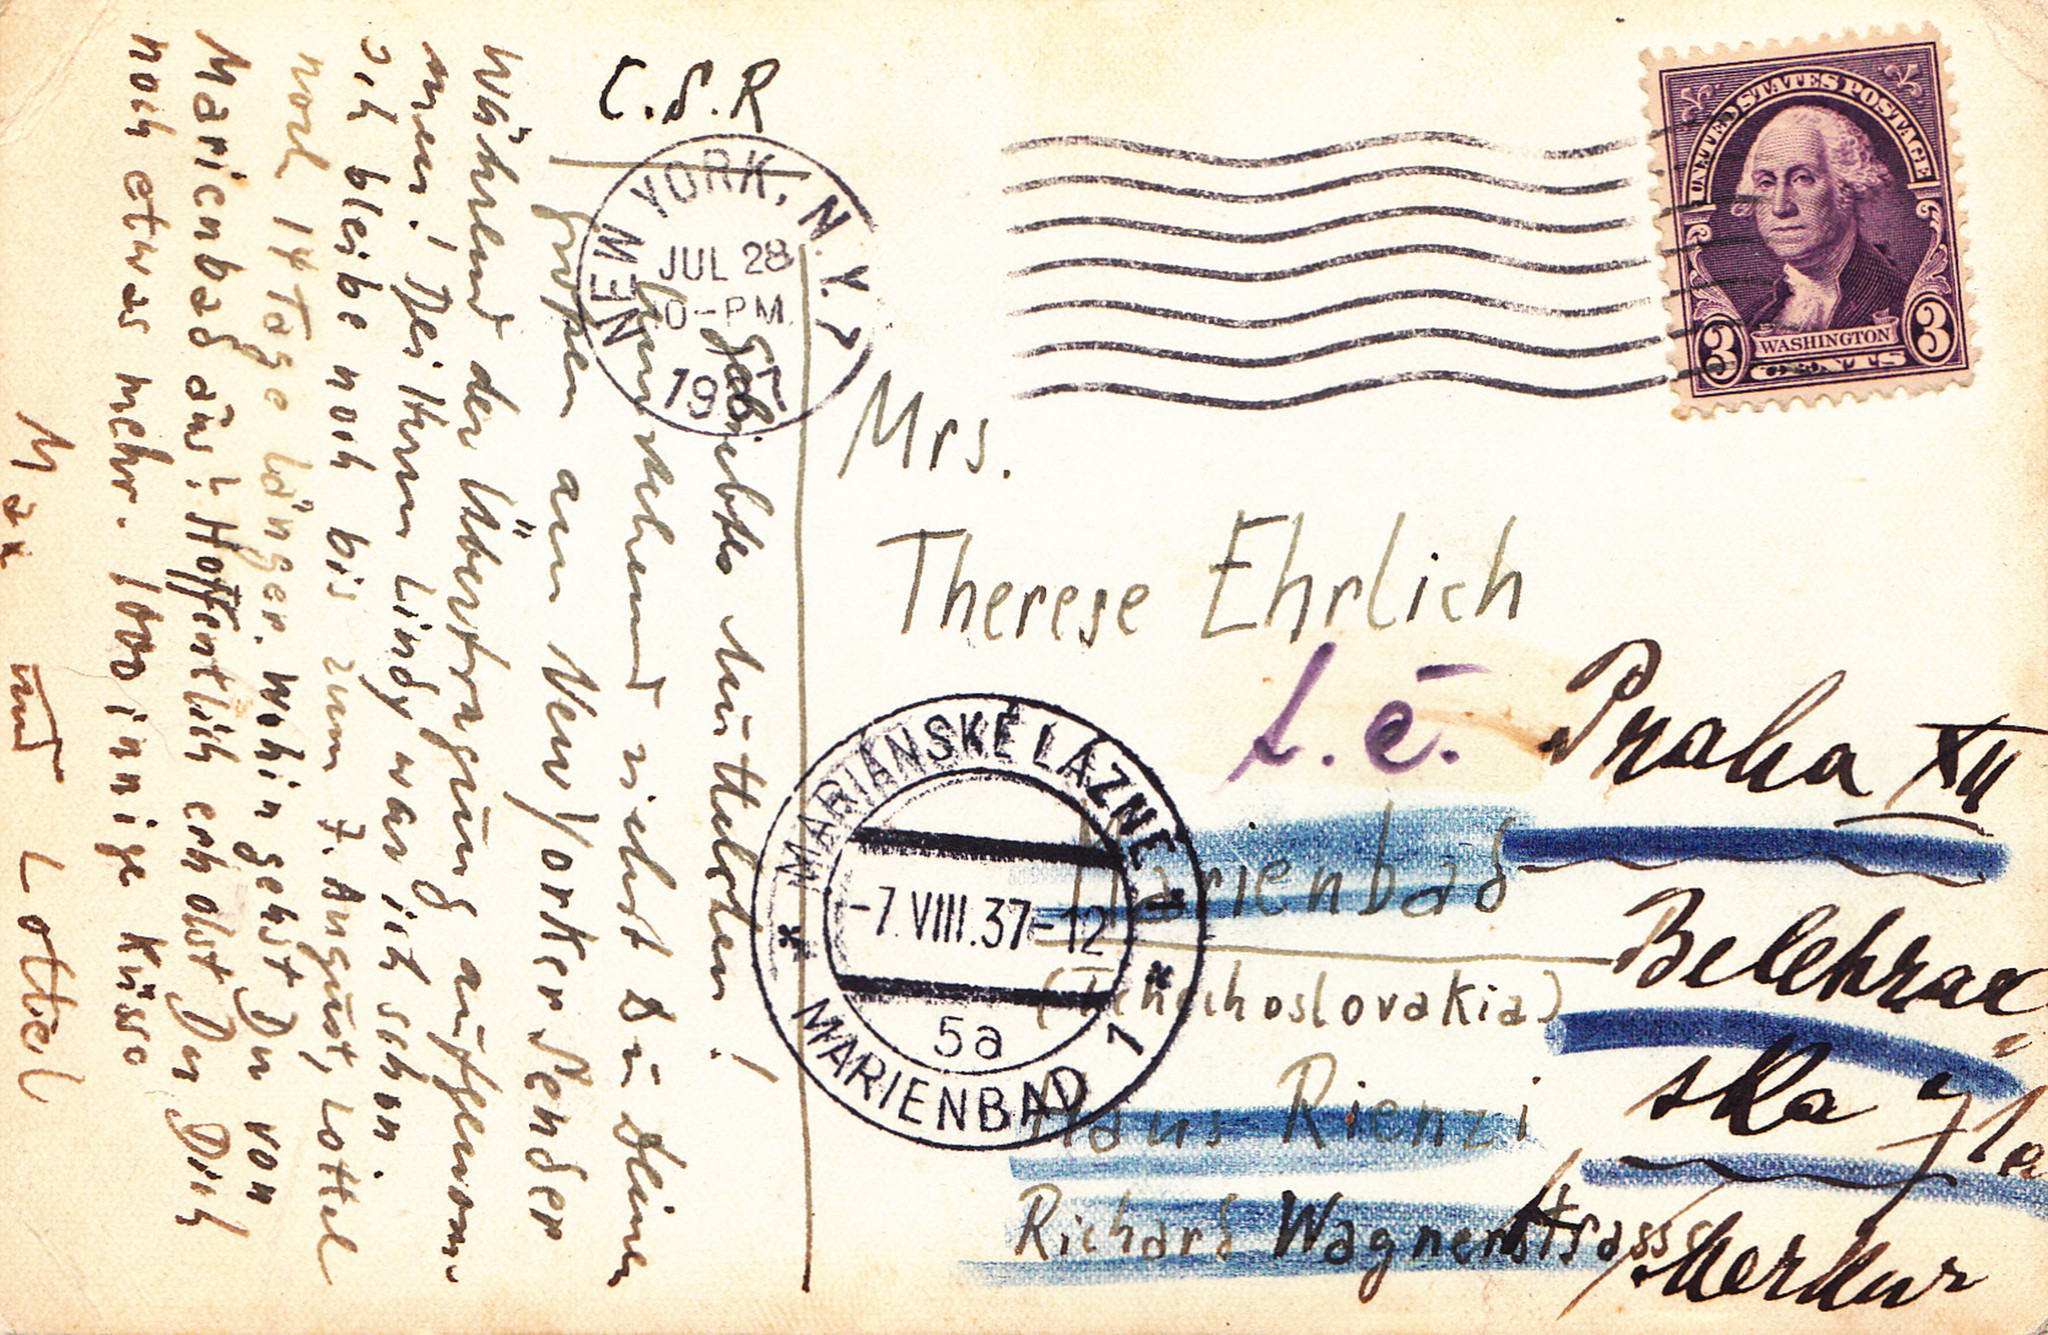 A postcard from Max Ehrlich, postmarked July 28, 1937 in New York, sent to his mother Therese about